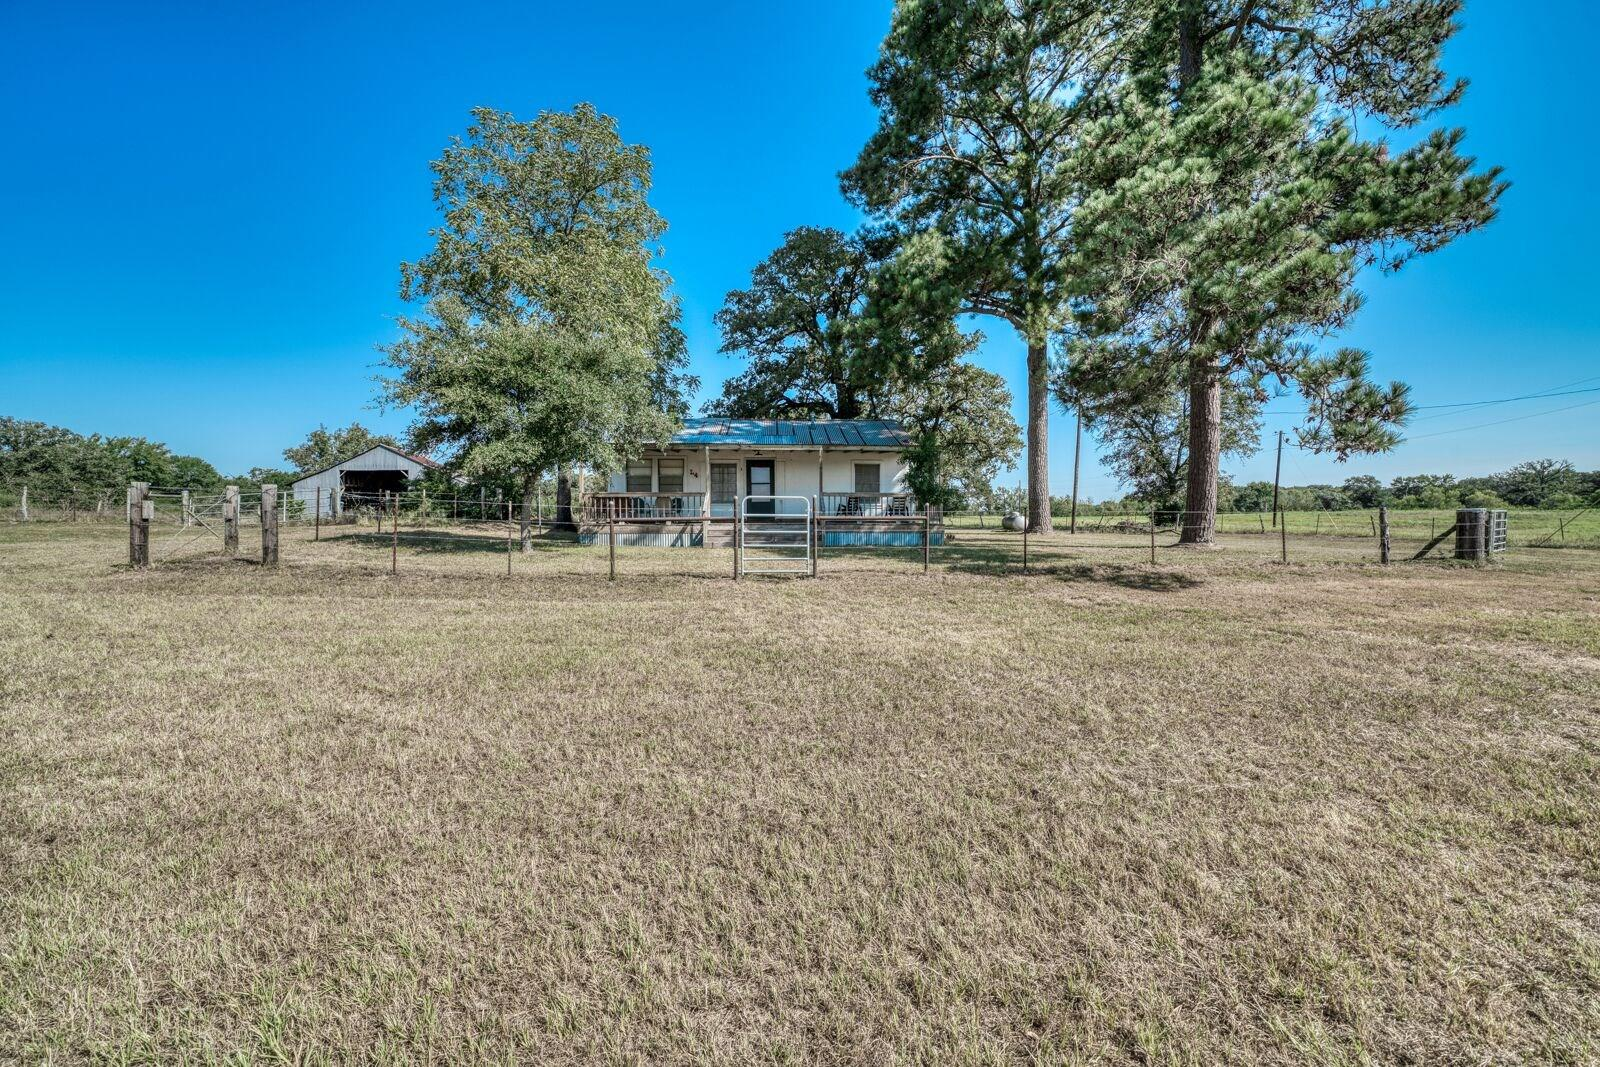 Tbd cr 482 Property Photo - Normangee, TX real estate listing